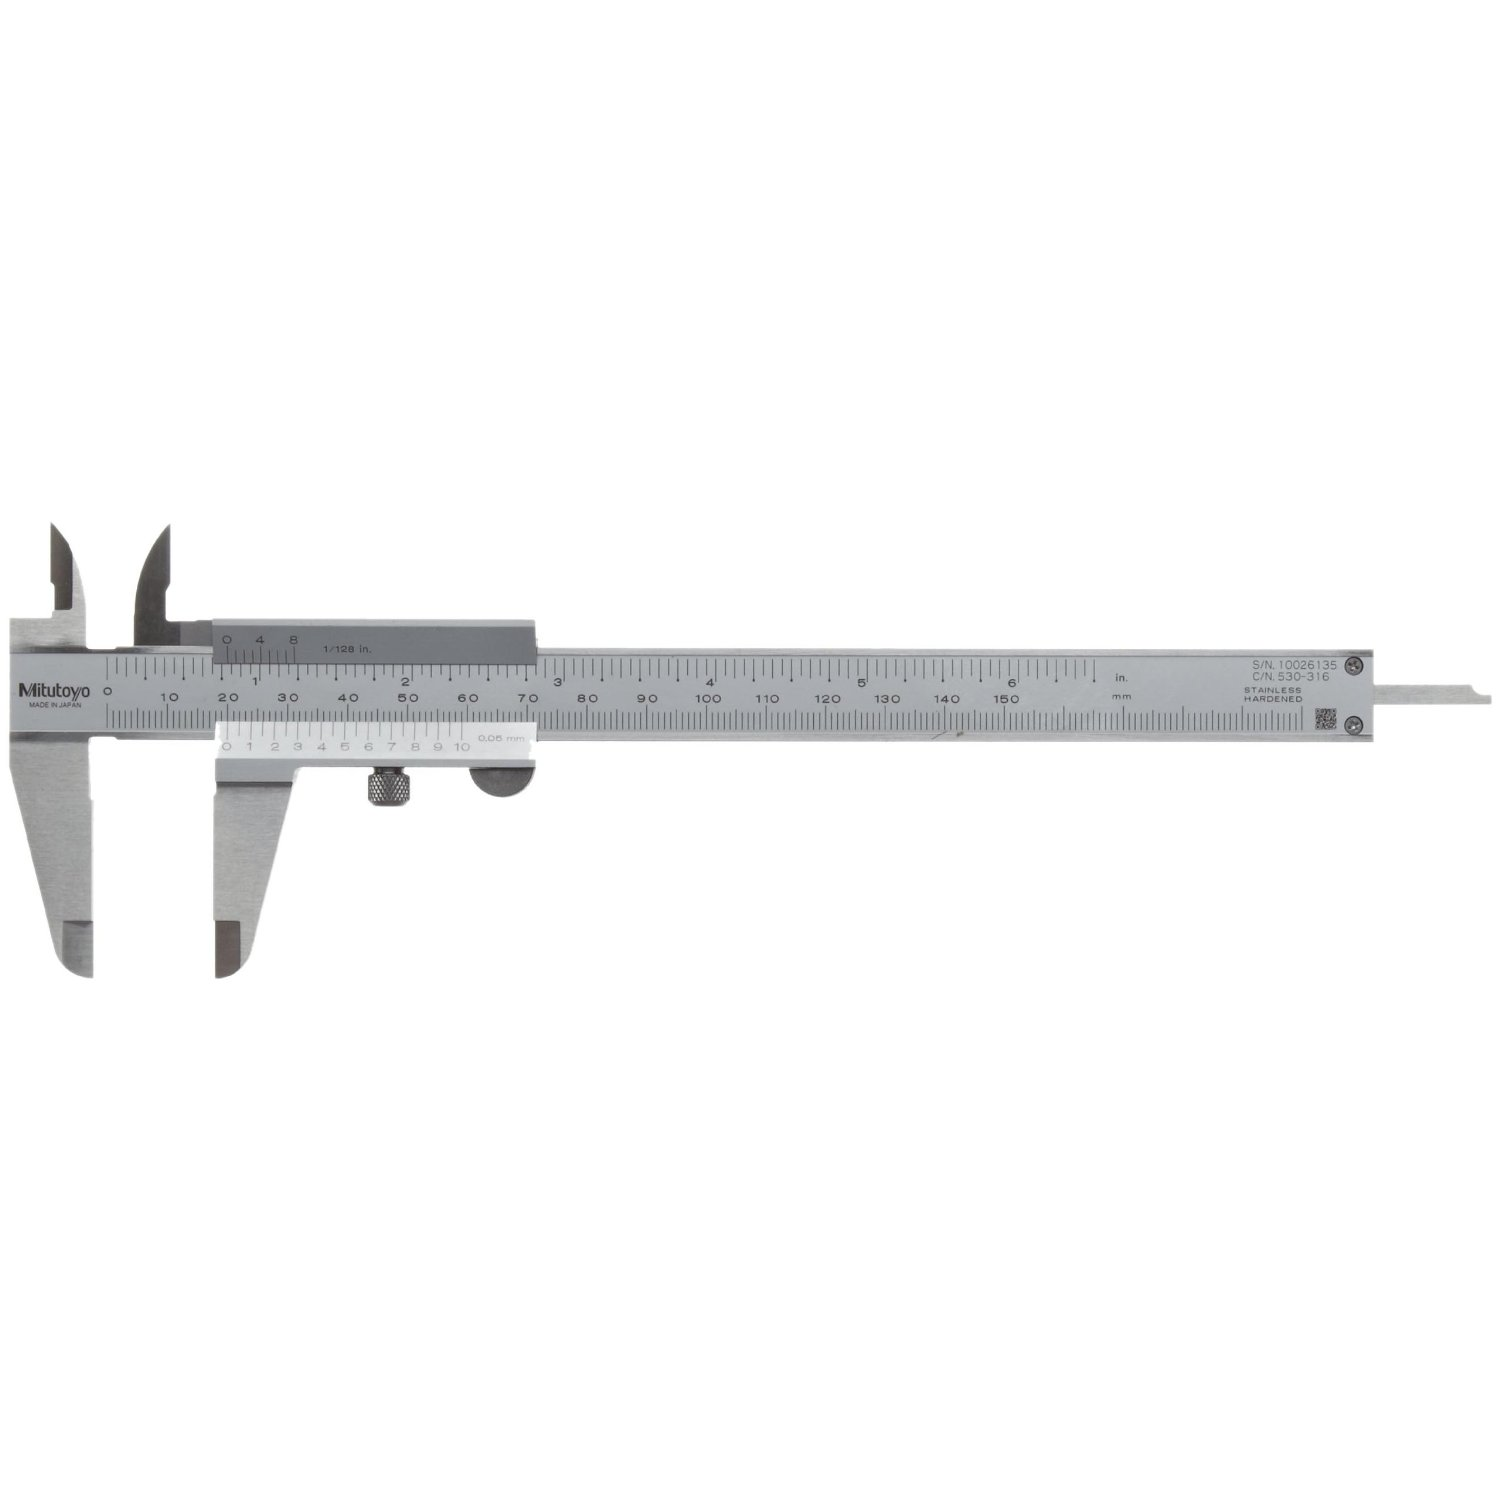 "vernier caliper Read the value of the main (stationary) scale which is just to the left & above the ""0"" zero reading on the vernier (movable) scale."